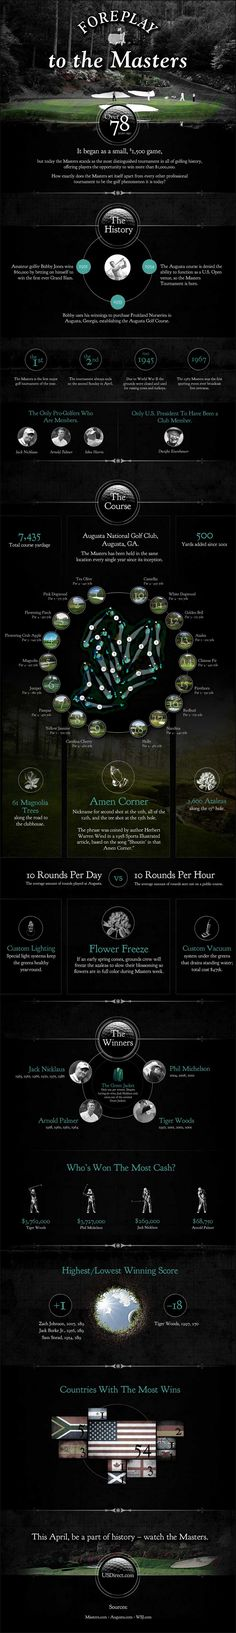 THINQ Golf | 10 Minutes to Your Best Golf EVER! | www.THINQGolf.com